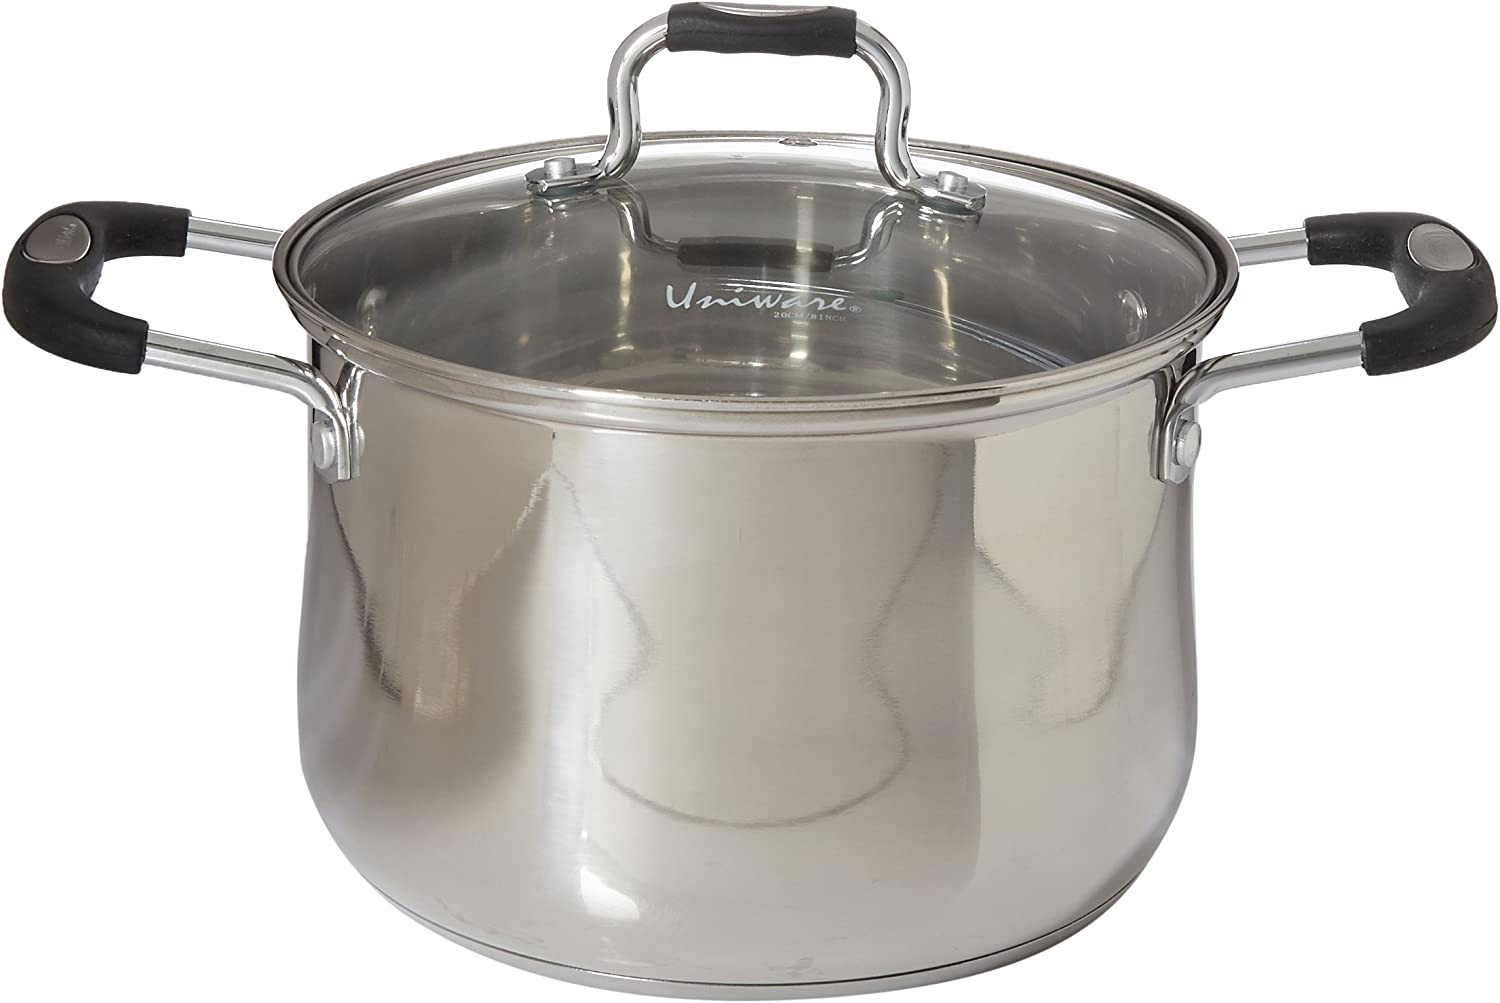 3.0 QT Uniware Stainless Steel Deep Sauce Pot With Lid,Oven Safe PTFE-PFOA-Free,Silver